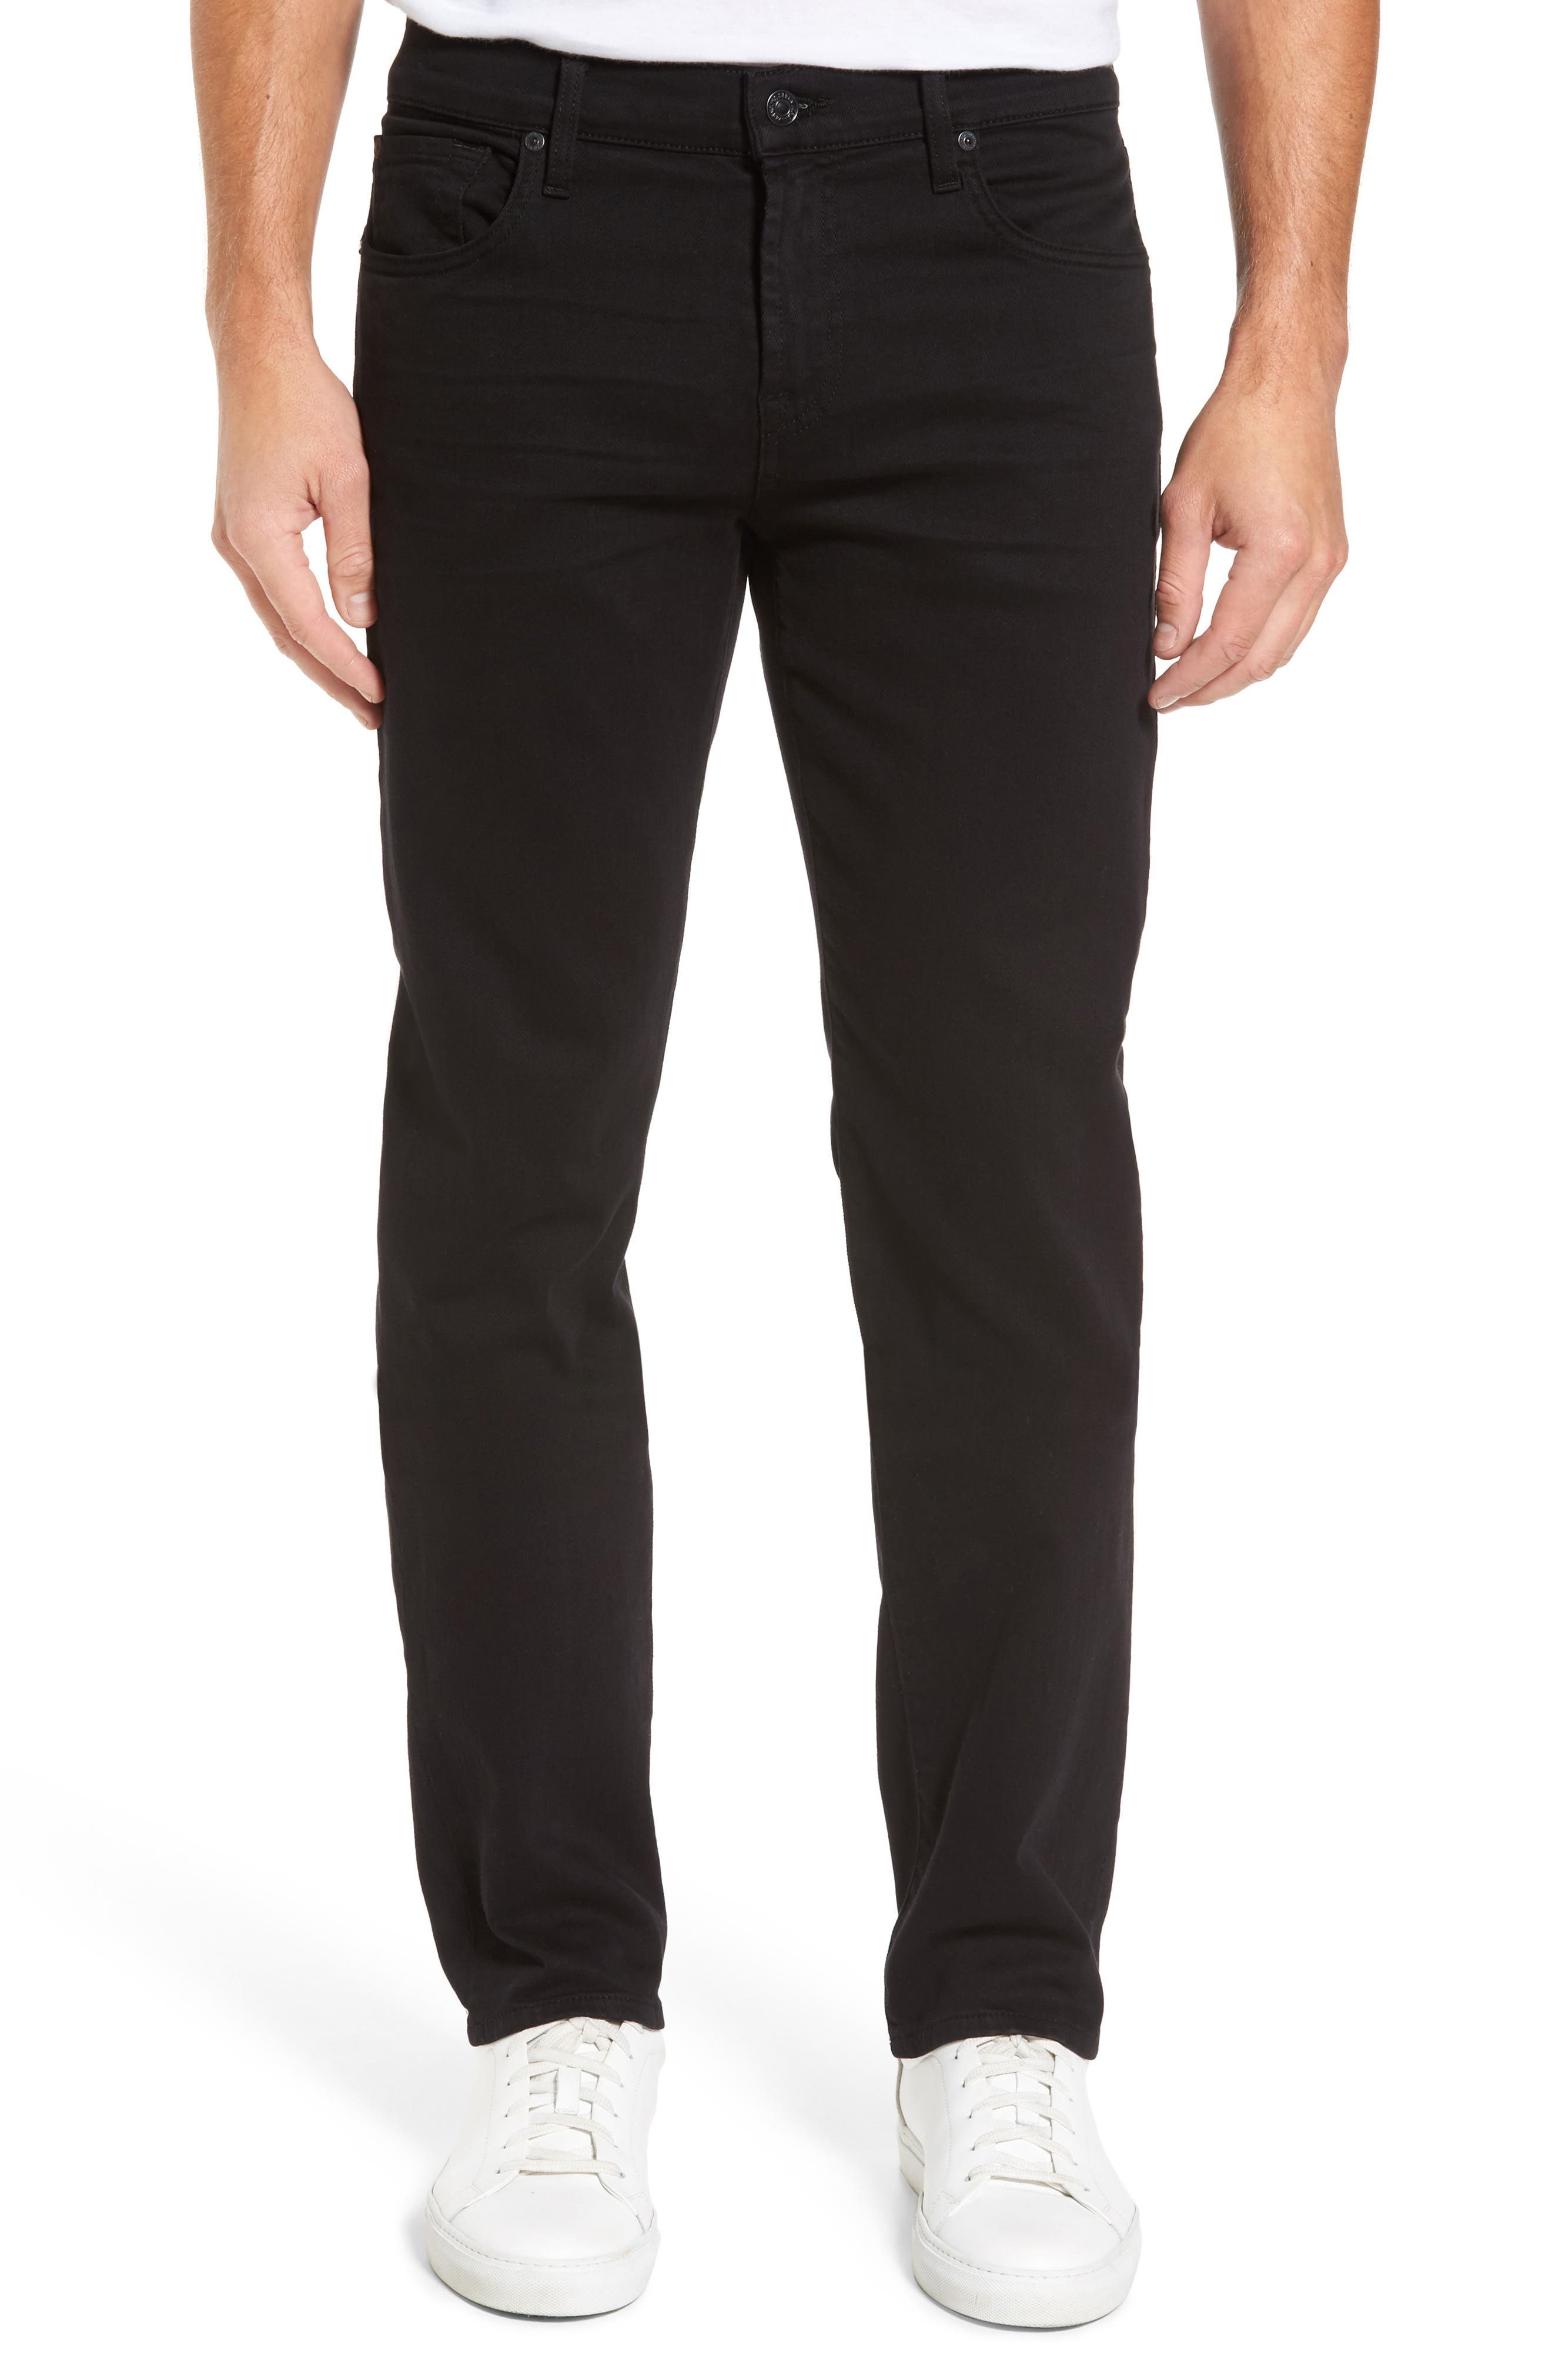 Men's 7 For All Mankind The Standard Straight Leg Jeans